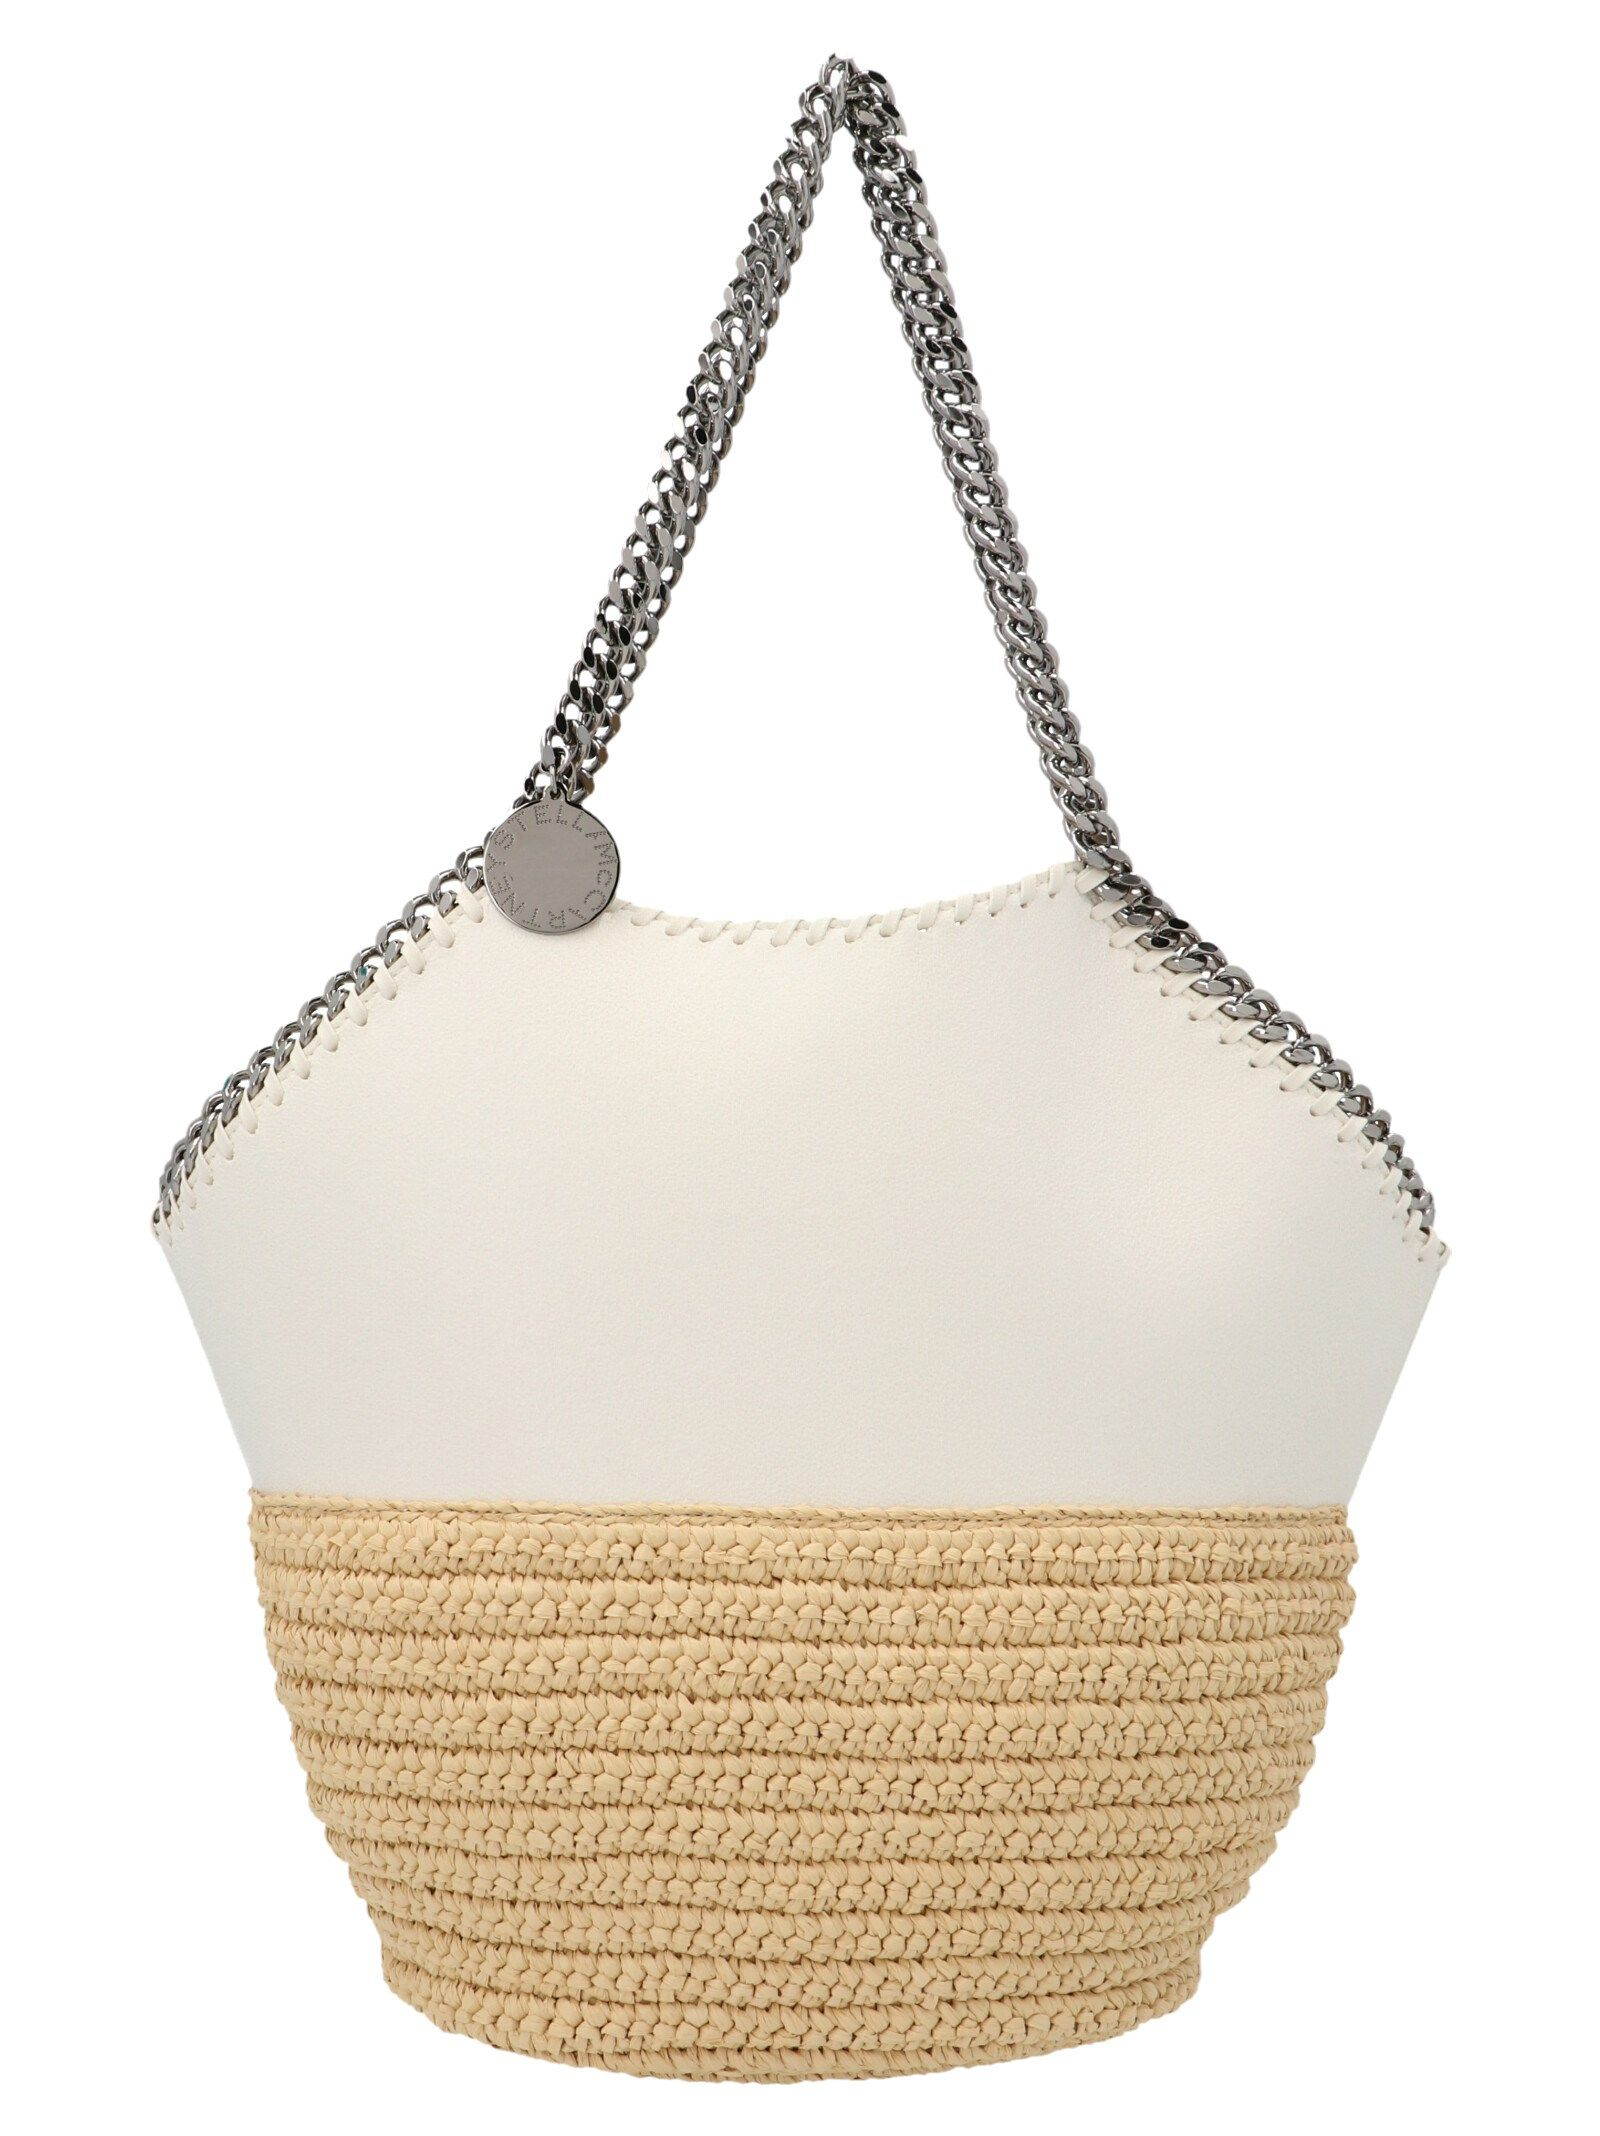 Stella Mccartney Totes STELLA MCCARTNEY WOMEN'S WHITE OTHER MATERIALS TOTE